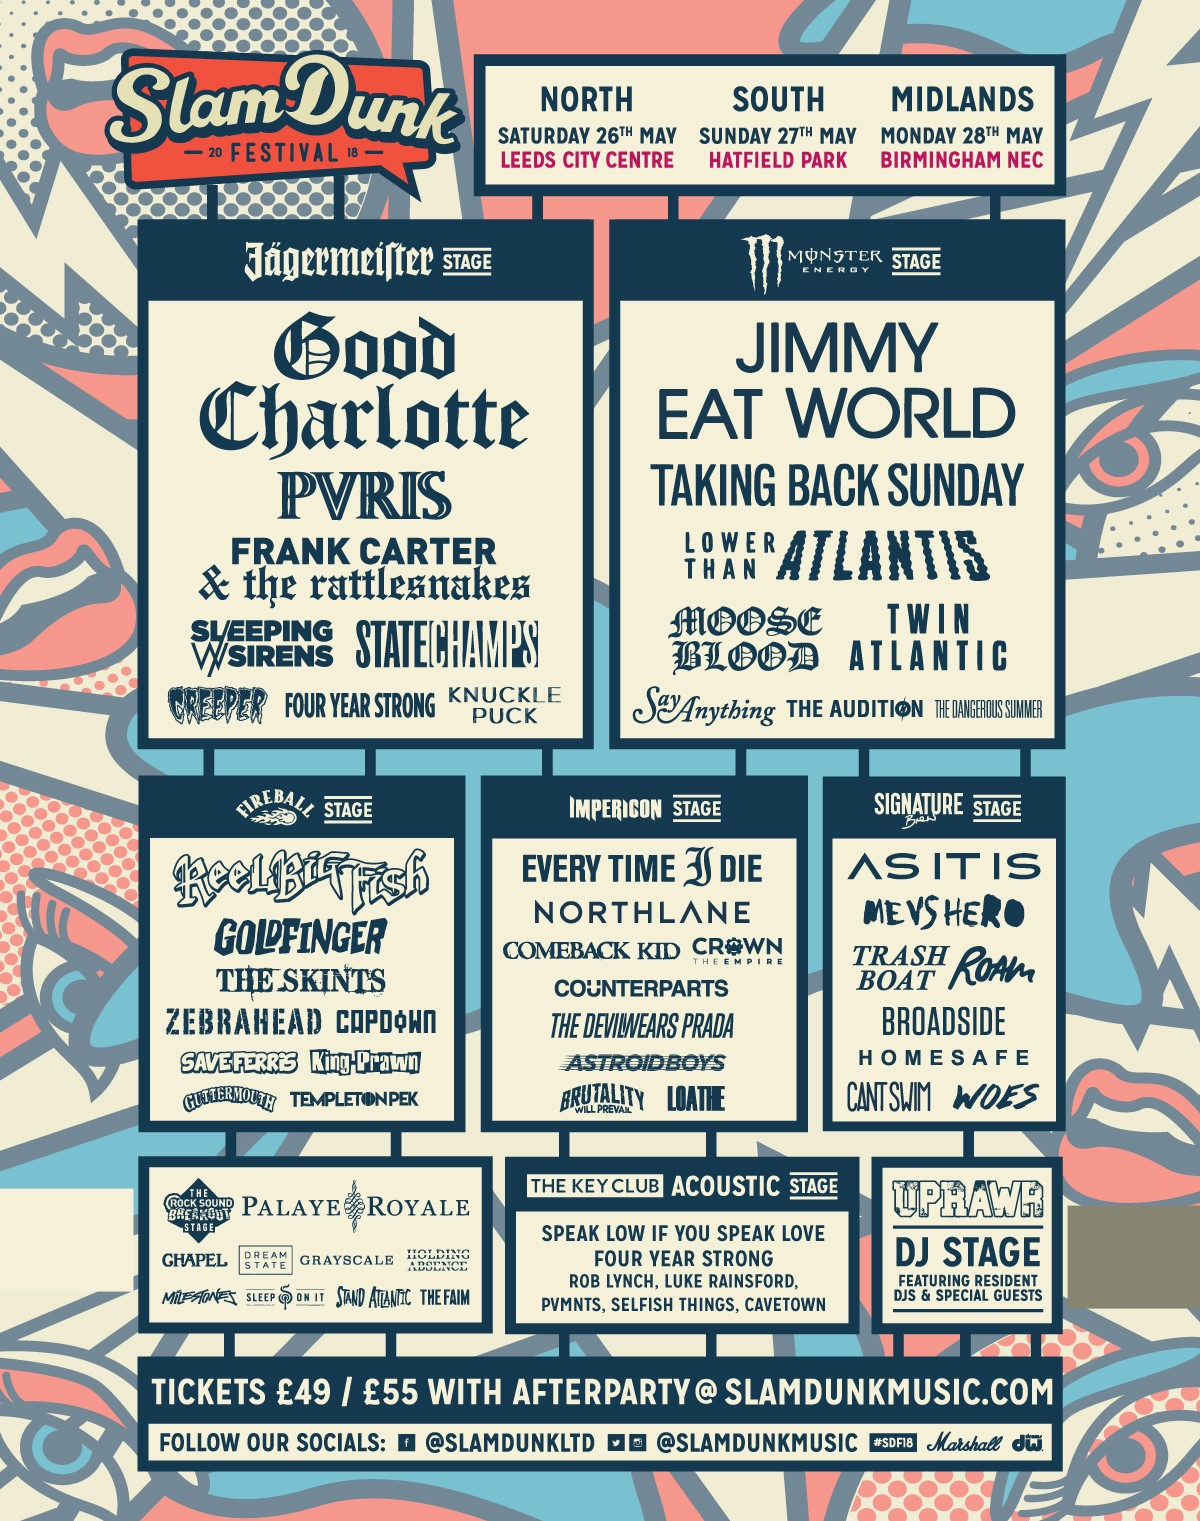 Slam Dunk Festival 2018 line up